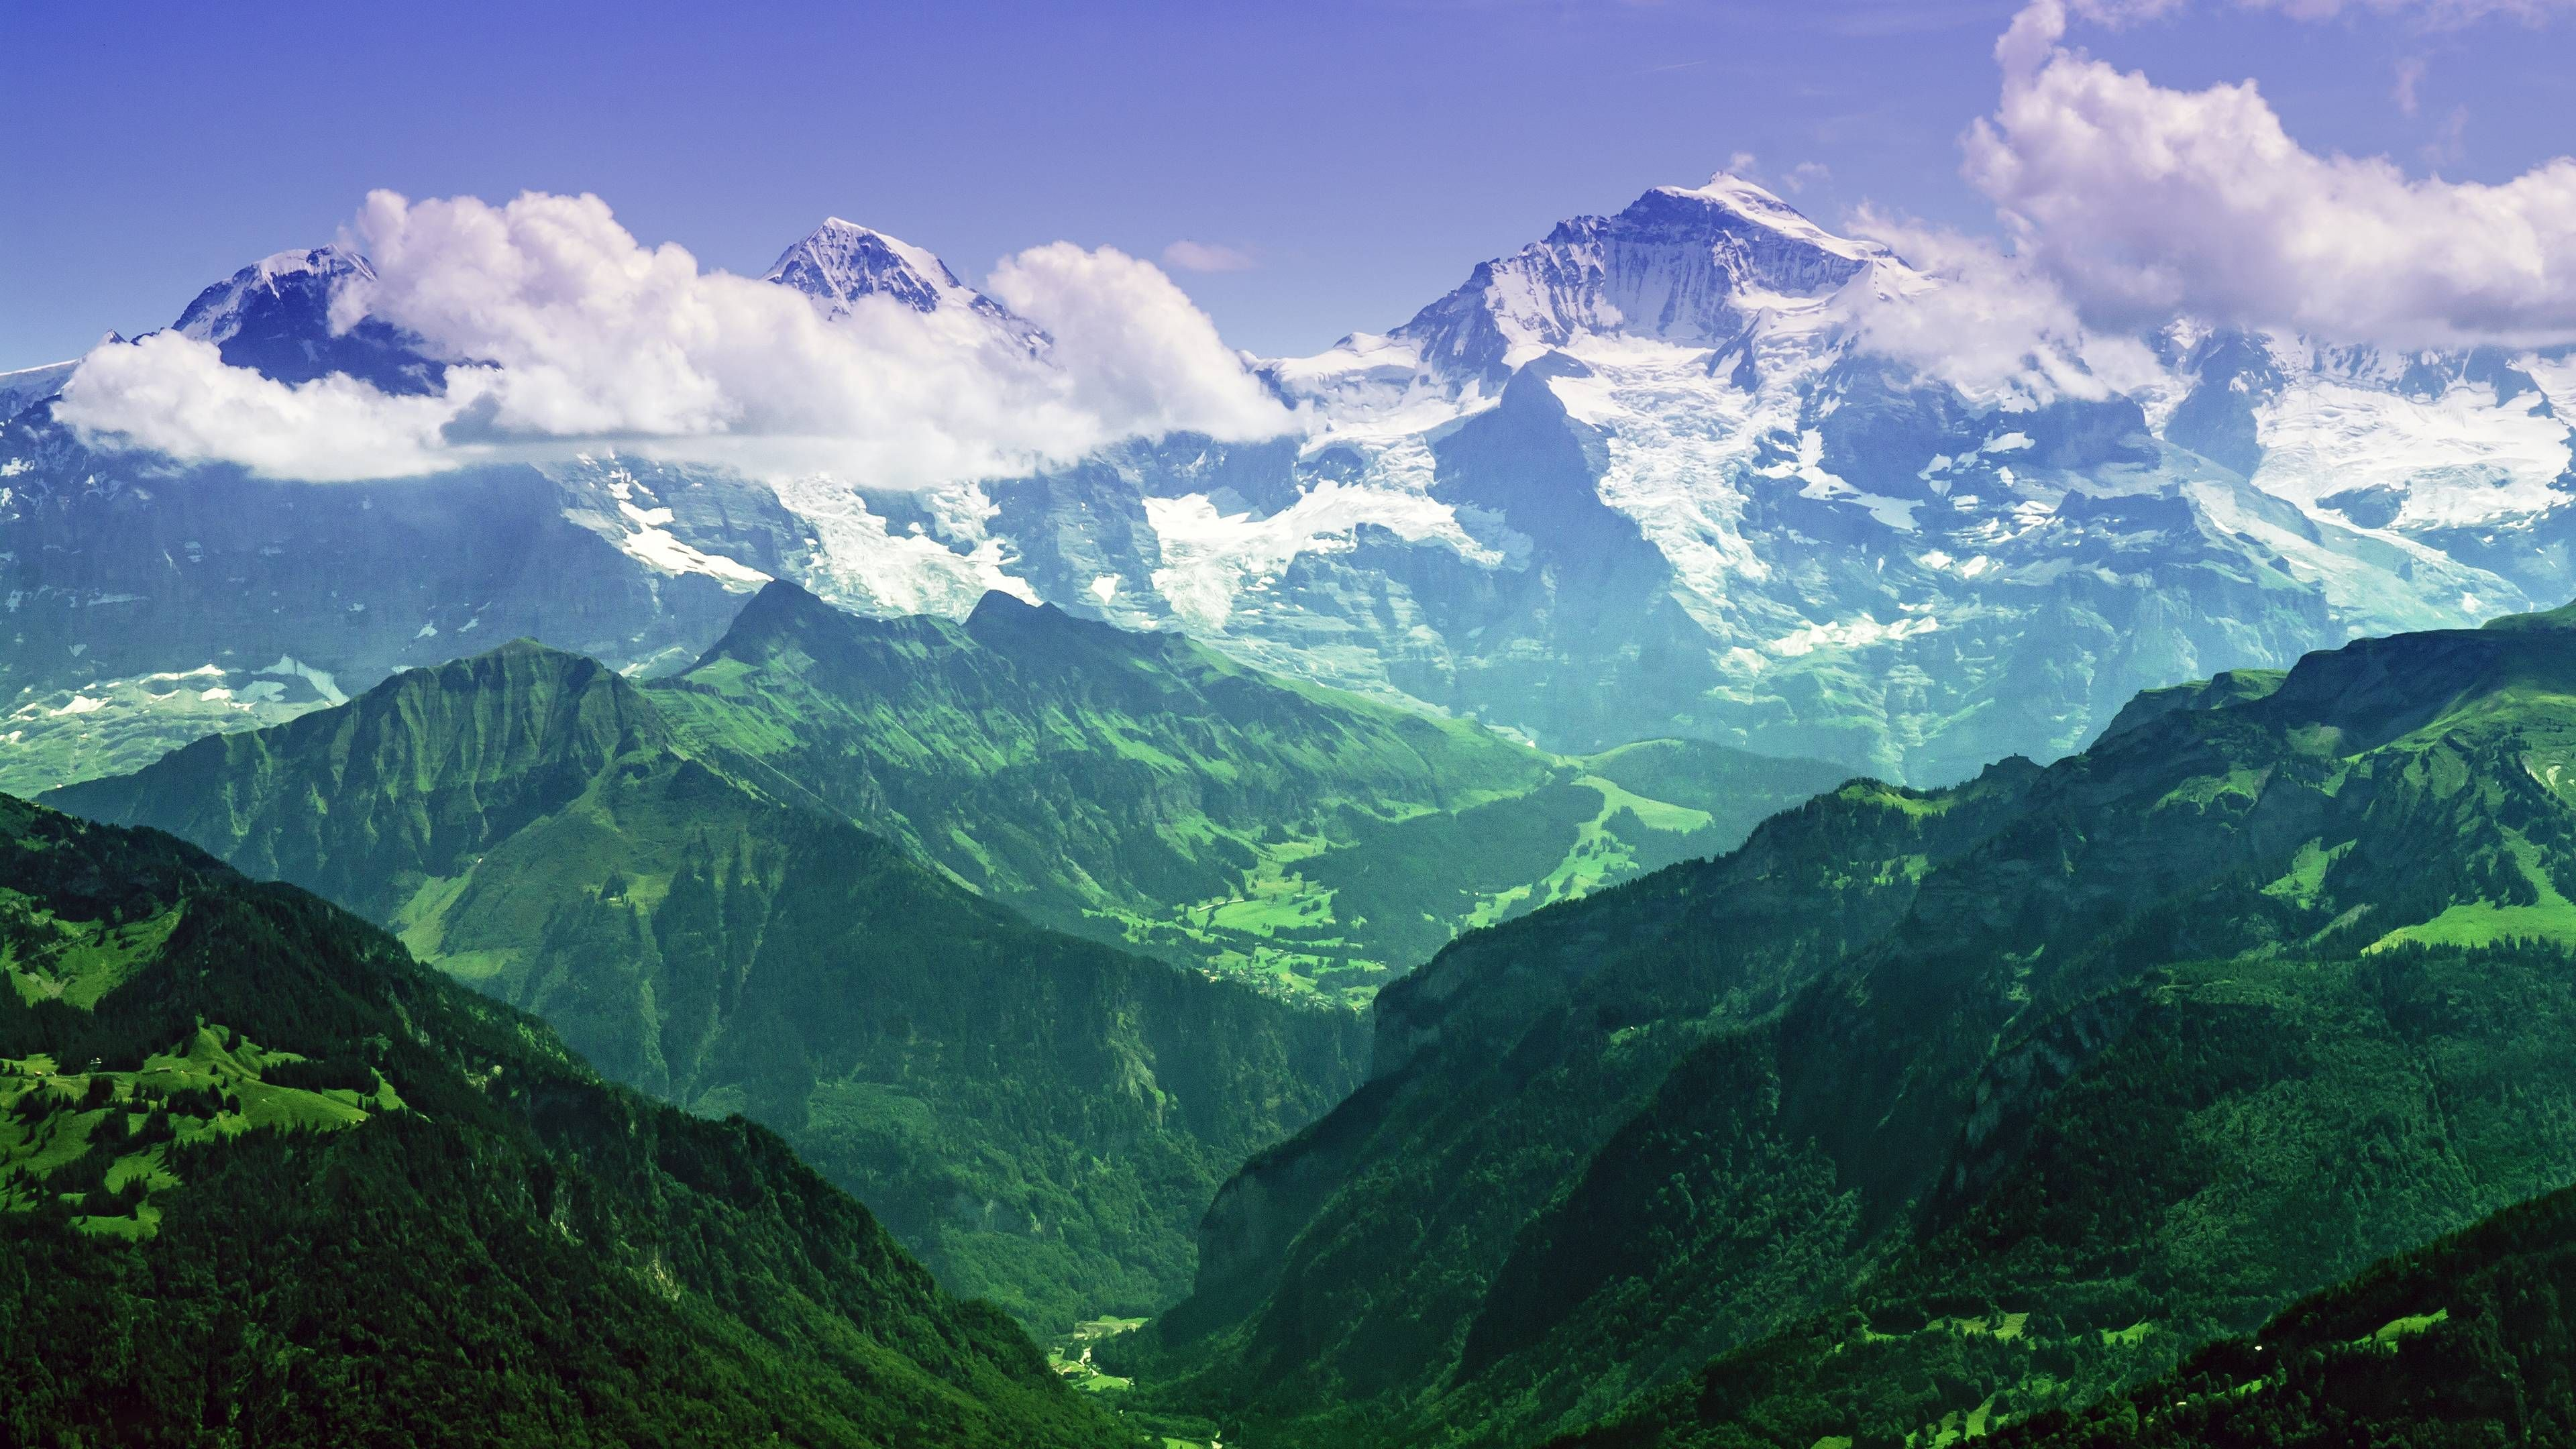 The mighty jungfrau bernese alps switzerland 3840x2160 the mighty jungfrau bernese alps switzerland 3840x2160 voltagebd Images